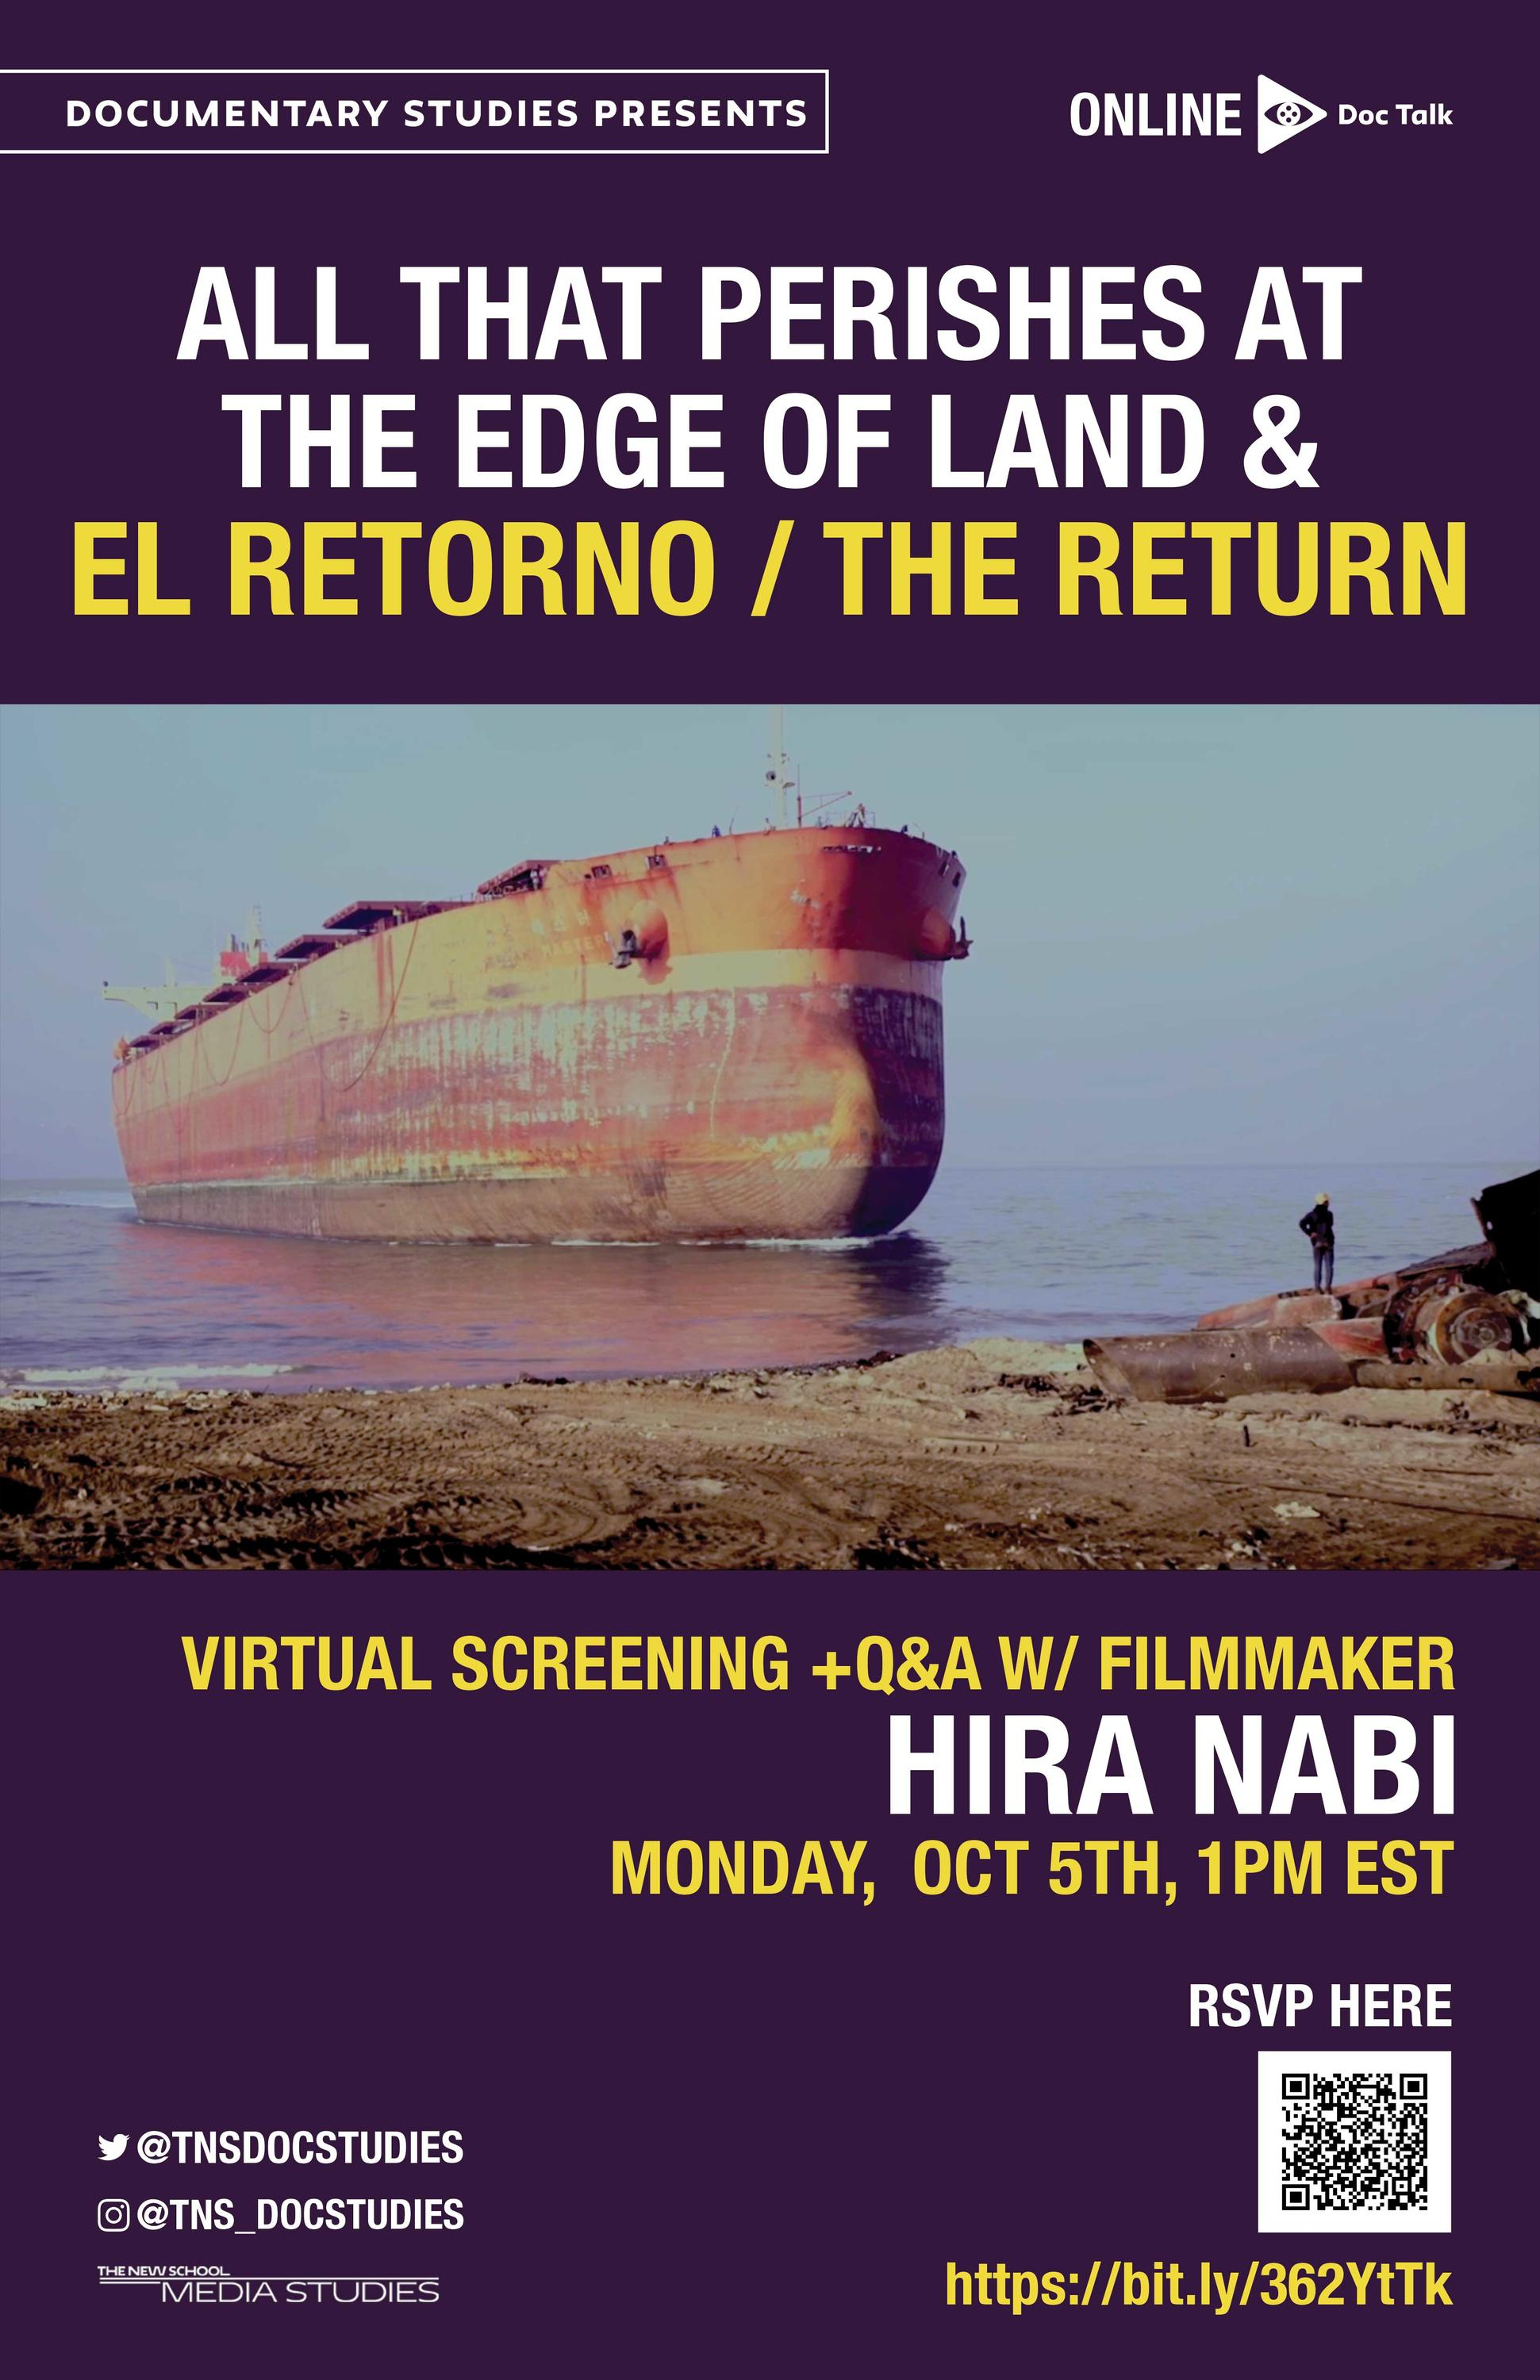 ONLINE | Doc Talk: All That Perishes At The Edge of Land & El Retorno/The Return